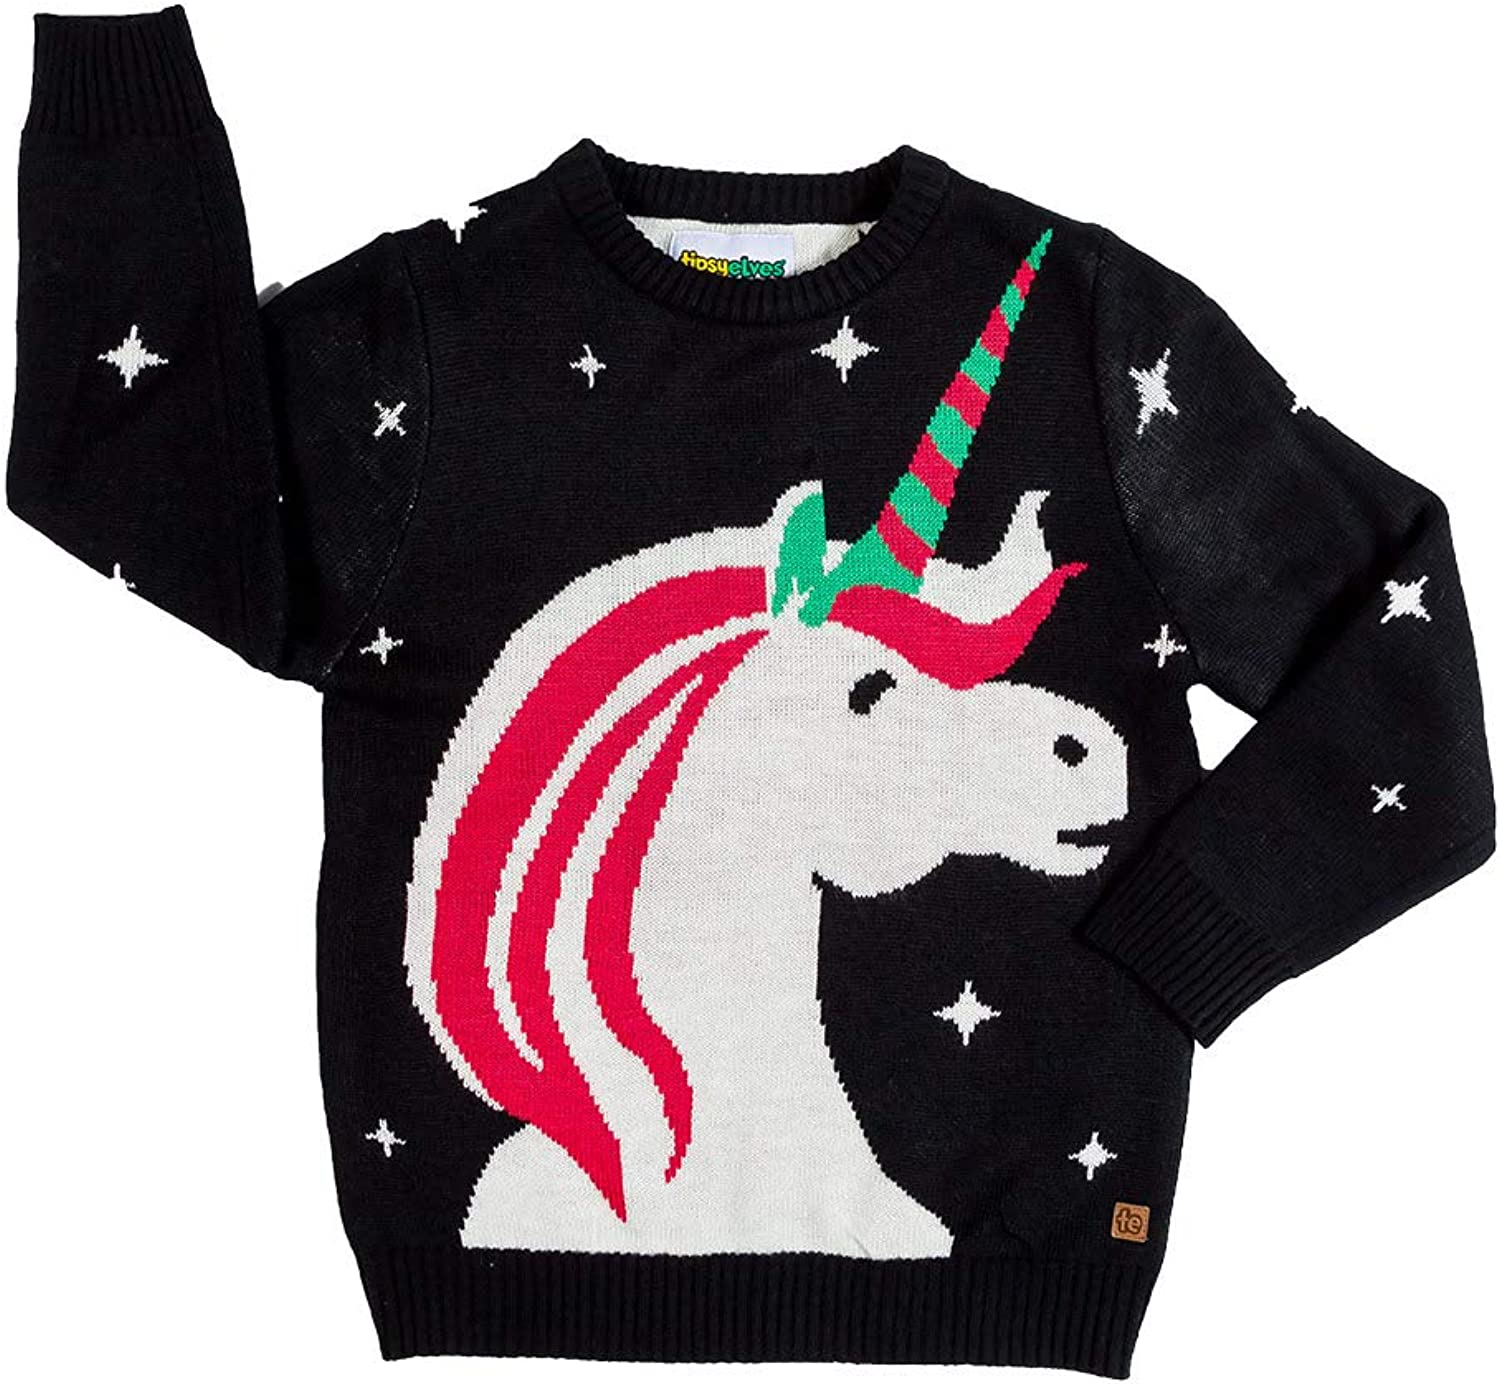 Tipsy Elves Cute Kid's Ugly Christmas Sweaters - Adorably Funny Holiday Themed Pullovers for Boys and Girls